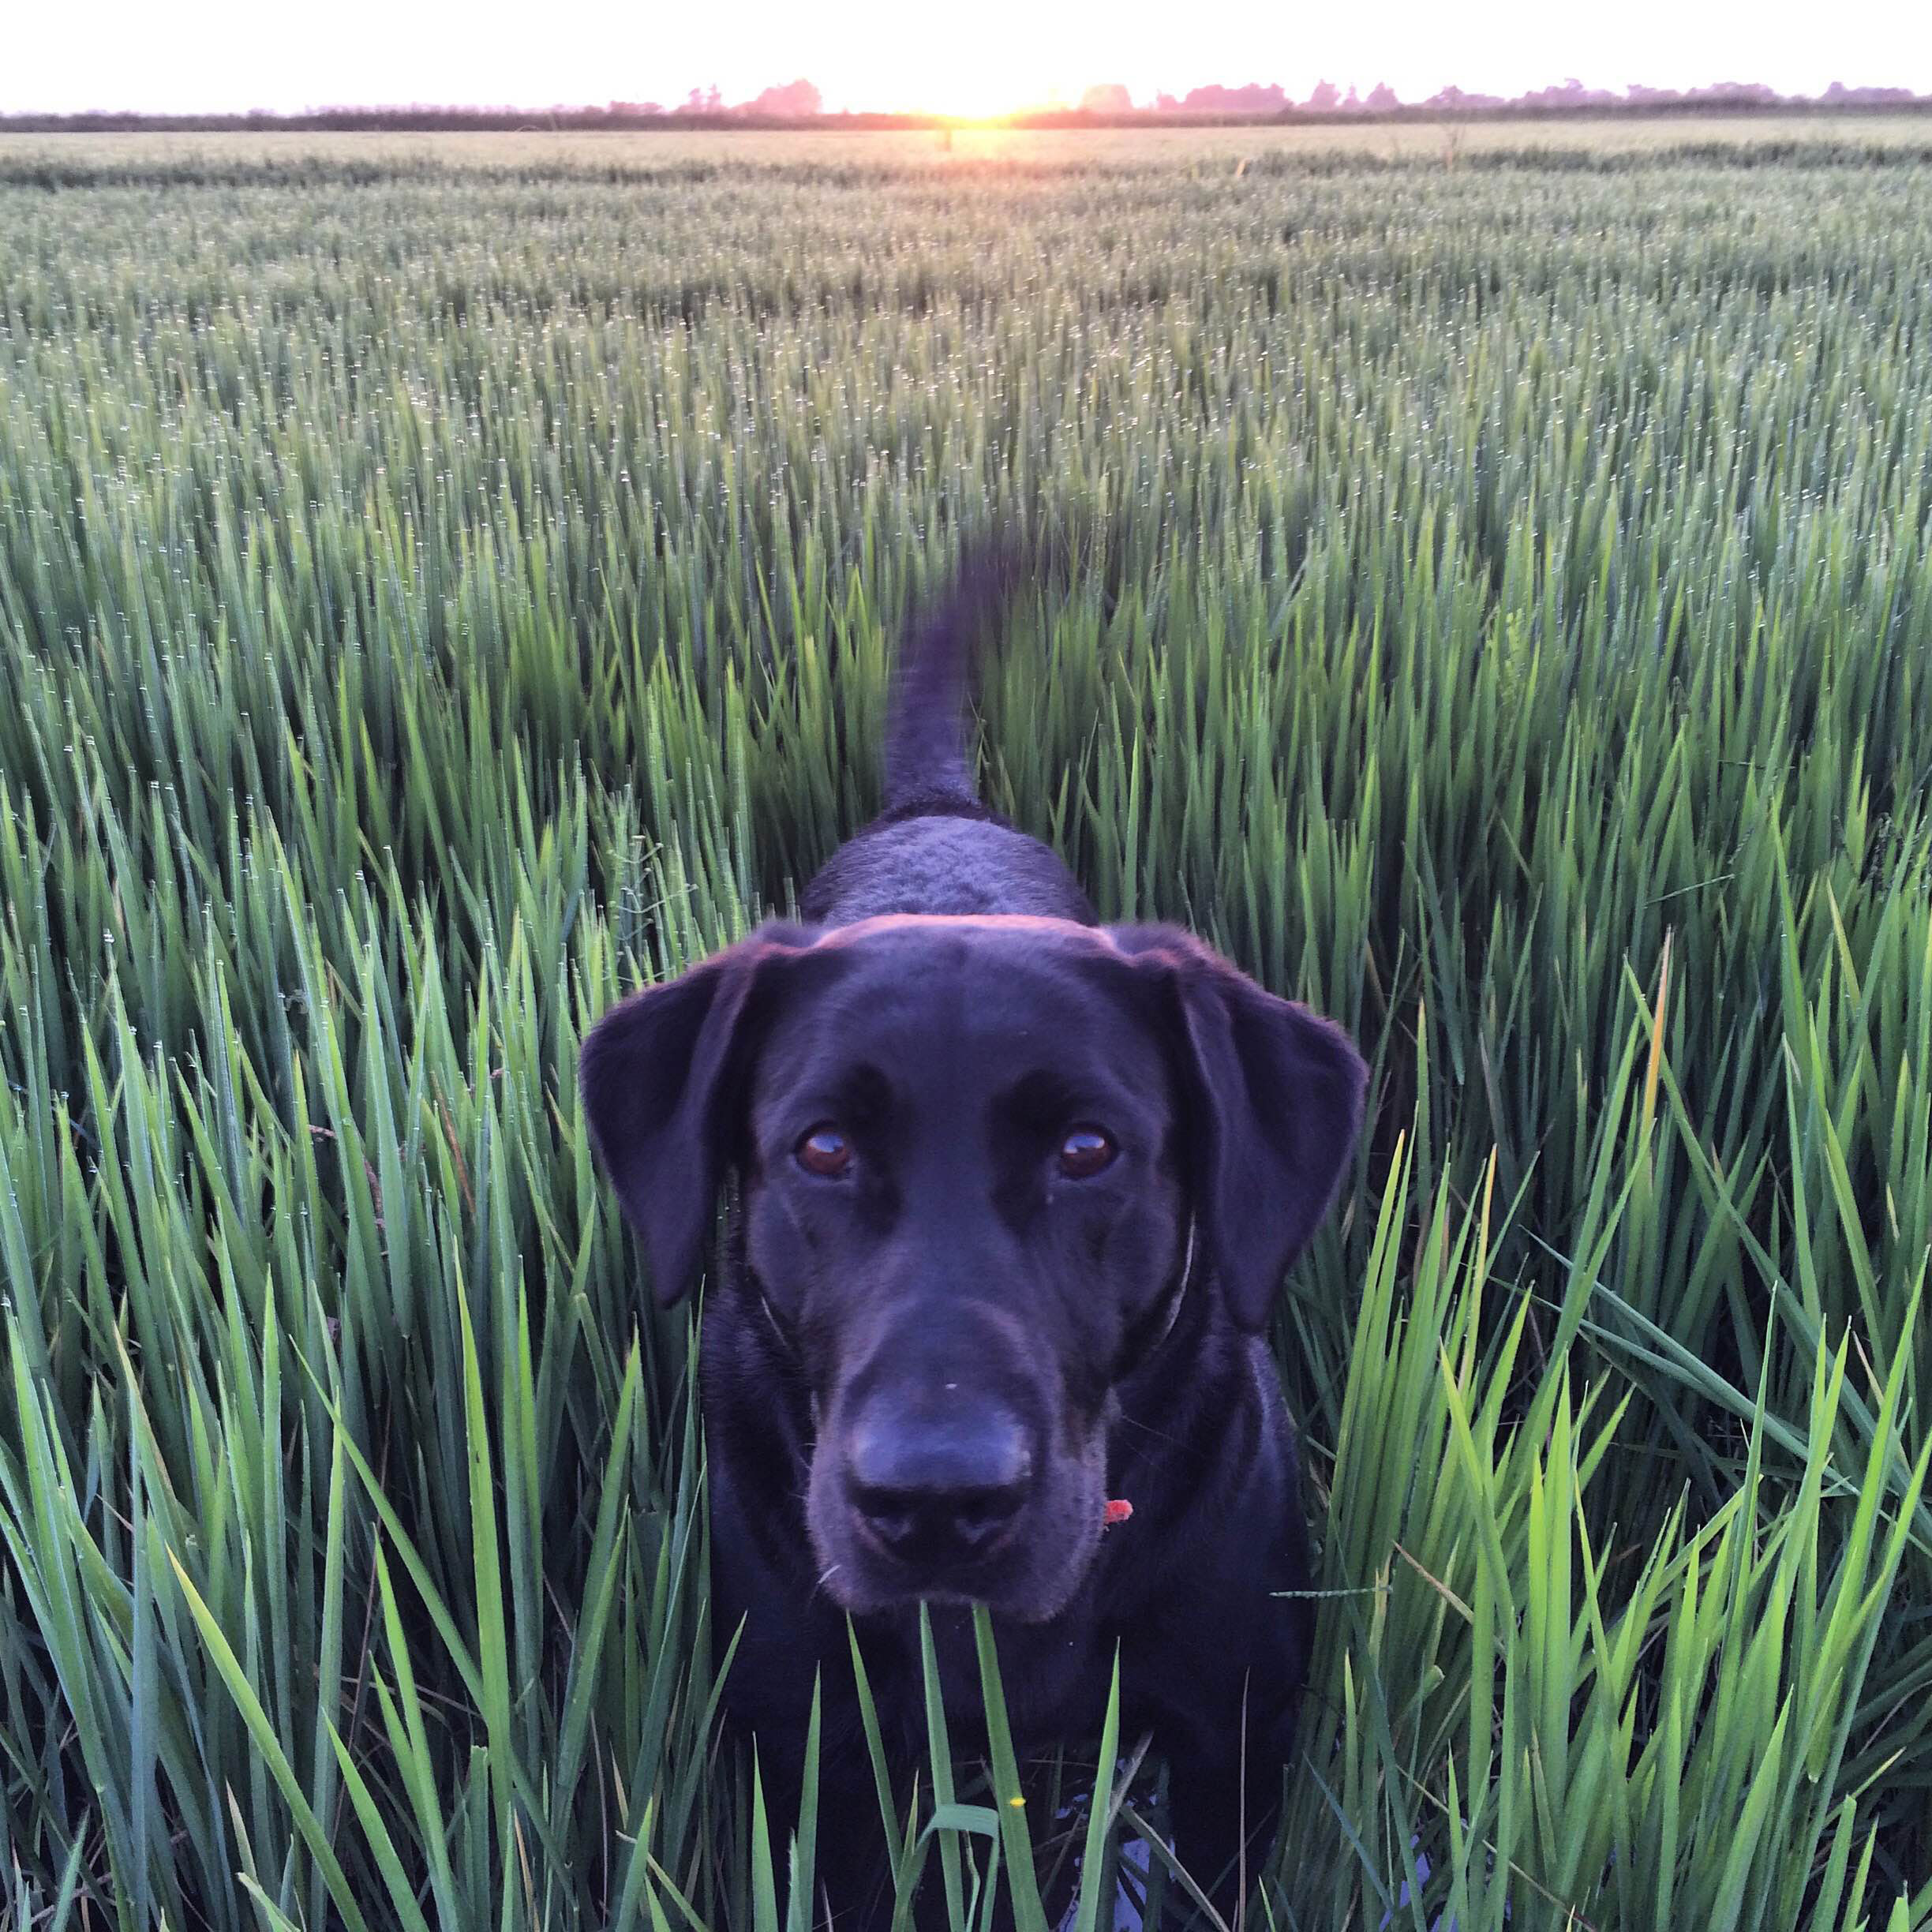 #ThinkRice-Photo-Contest-Winner - closeup of a black lab in a rice field